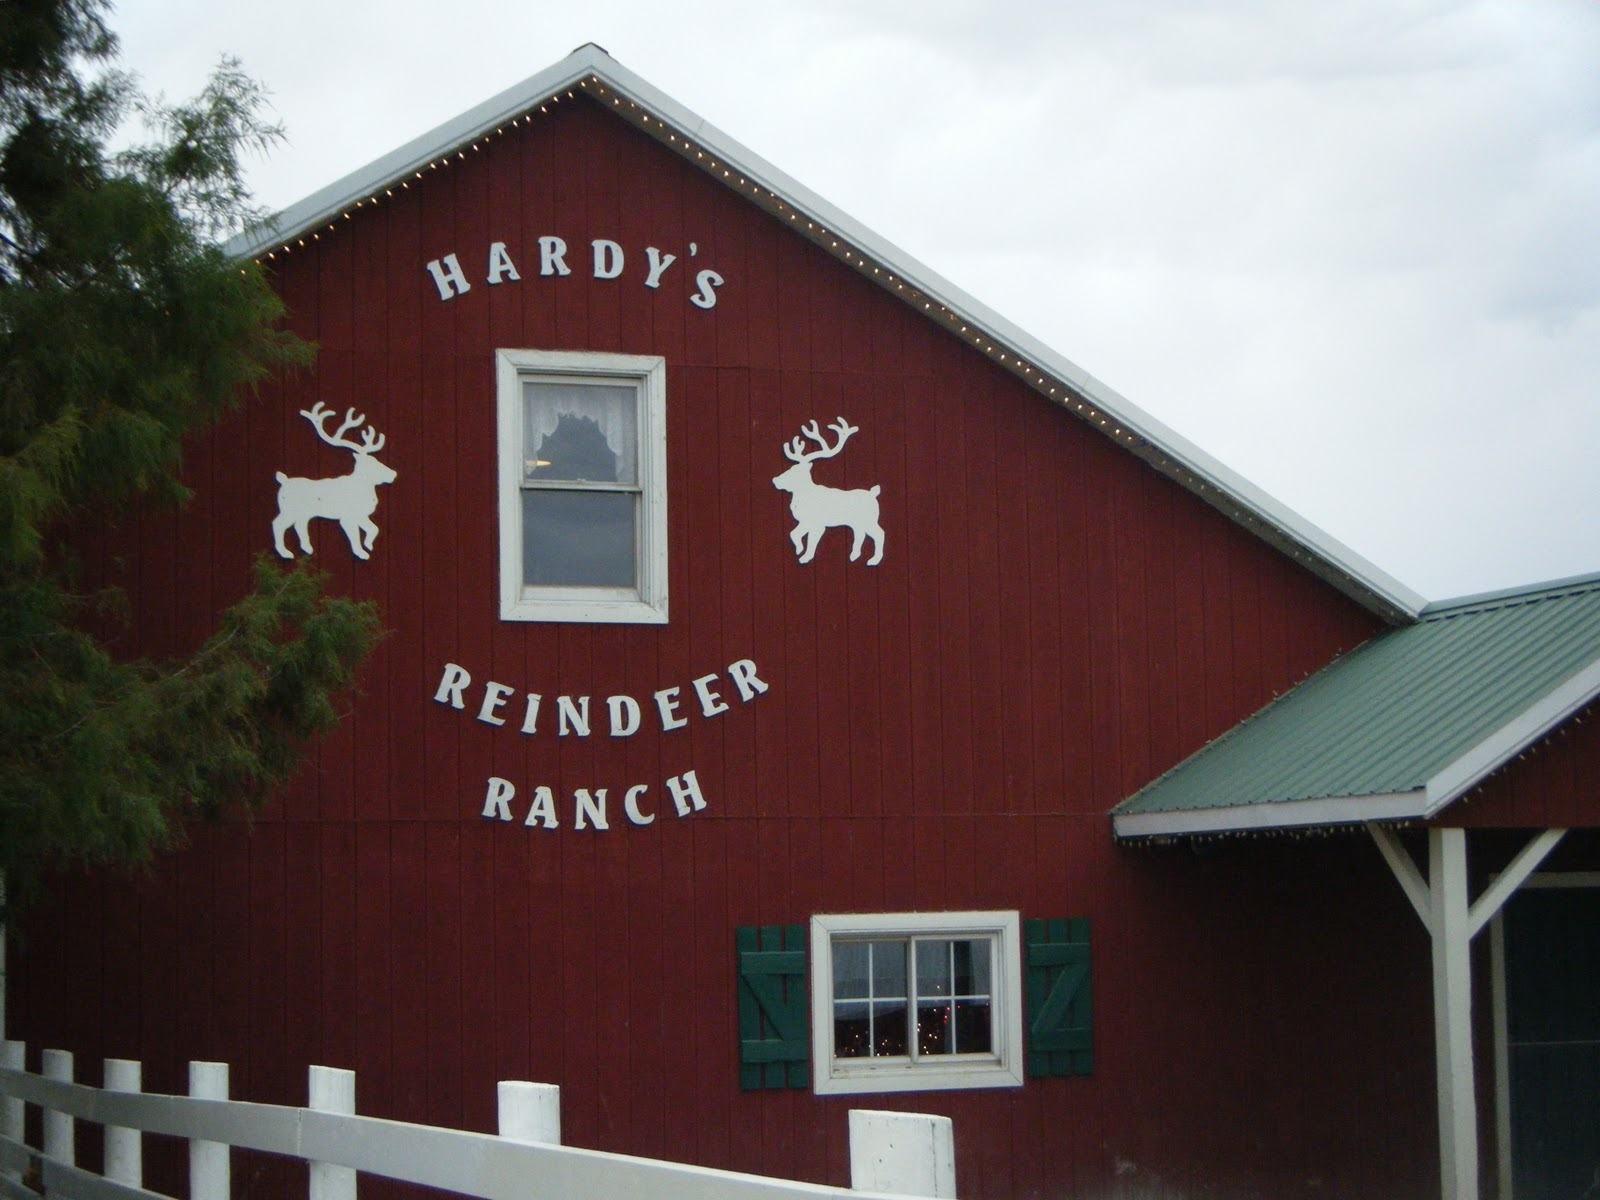 Hardy's Reindeer Ranch - Rantoul, IL